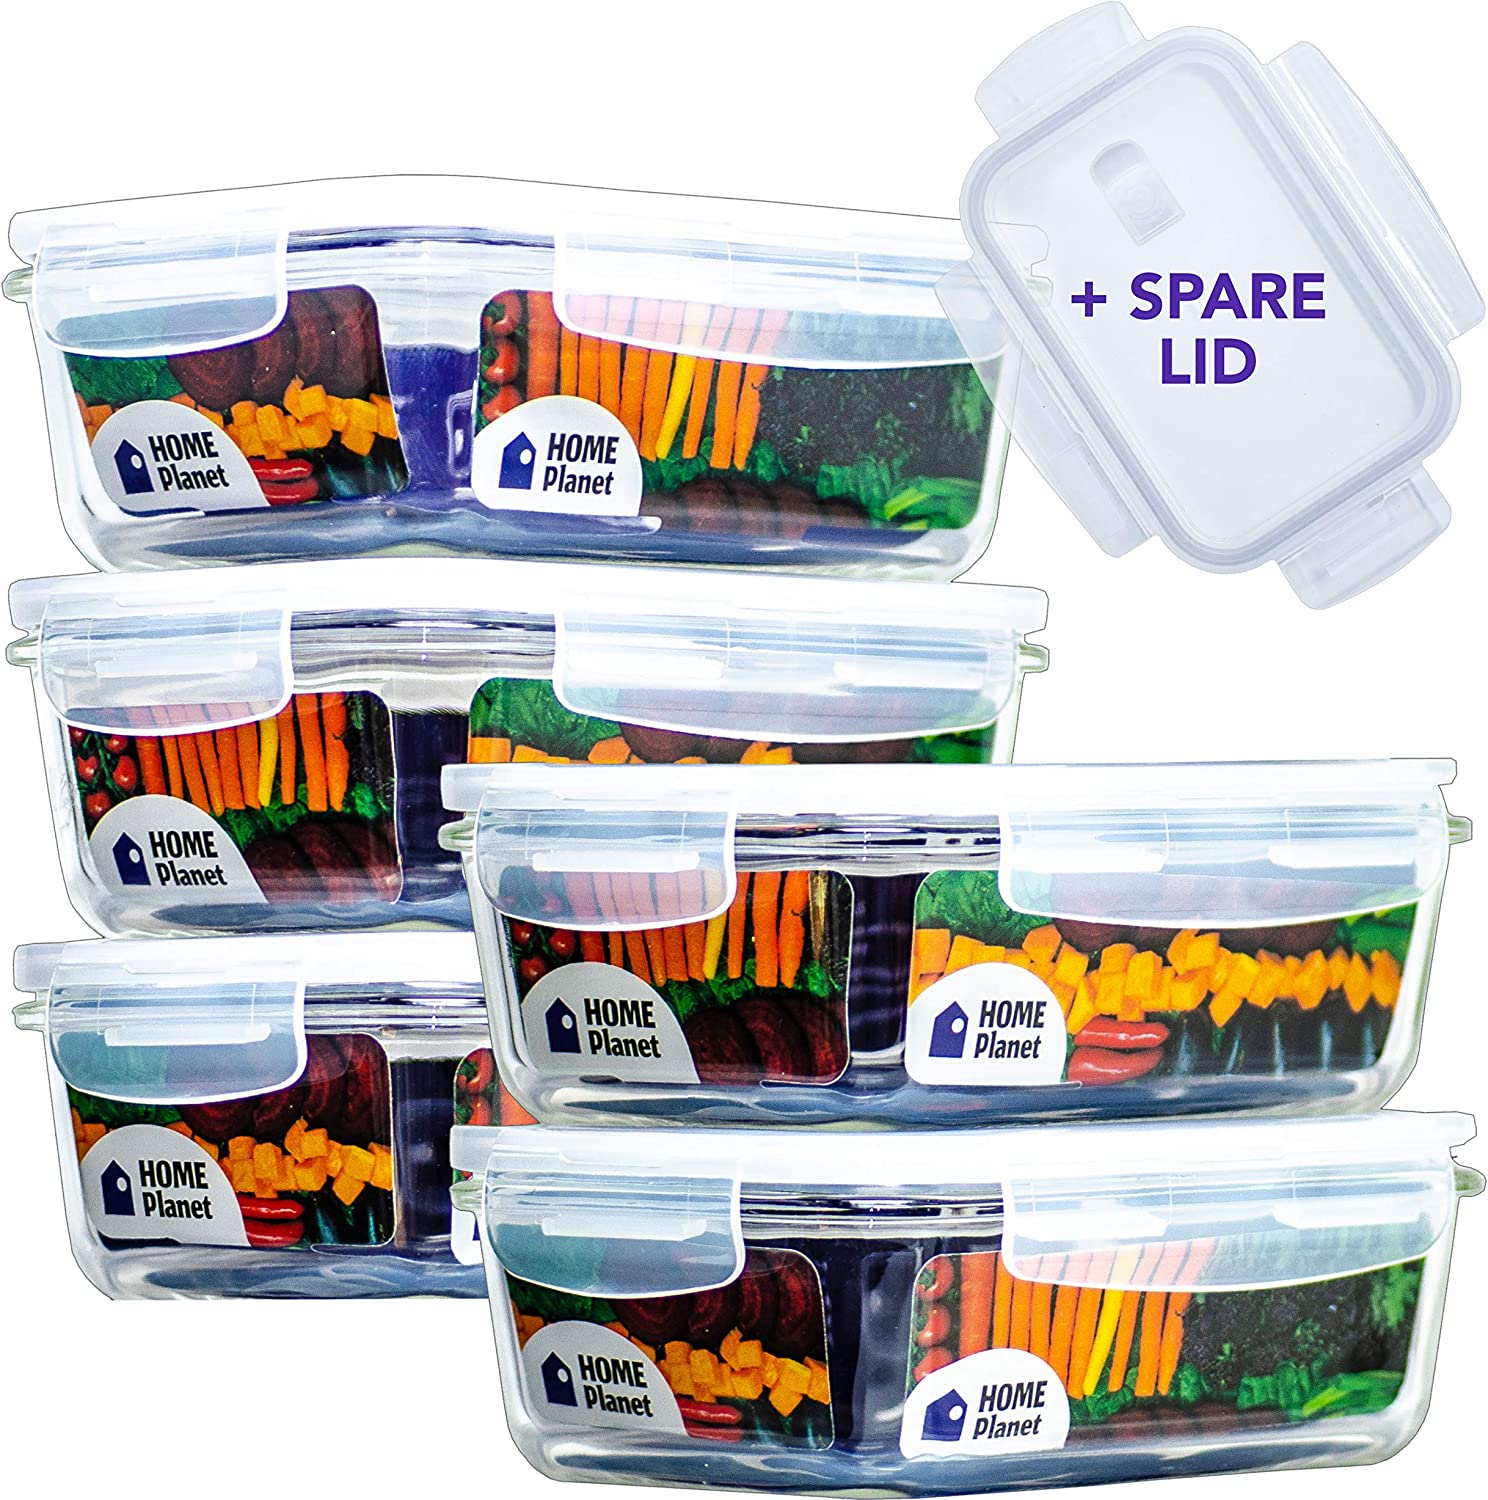 Home Planet Glass Meal Prep Containers | Food Containers Glass | 5 Pack 29 Oz 3.5 Cups | 97% Less Plastic Packaging | 6 BPA-Free Lids: 5+1 Spare | Glass Lunch Containers